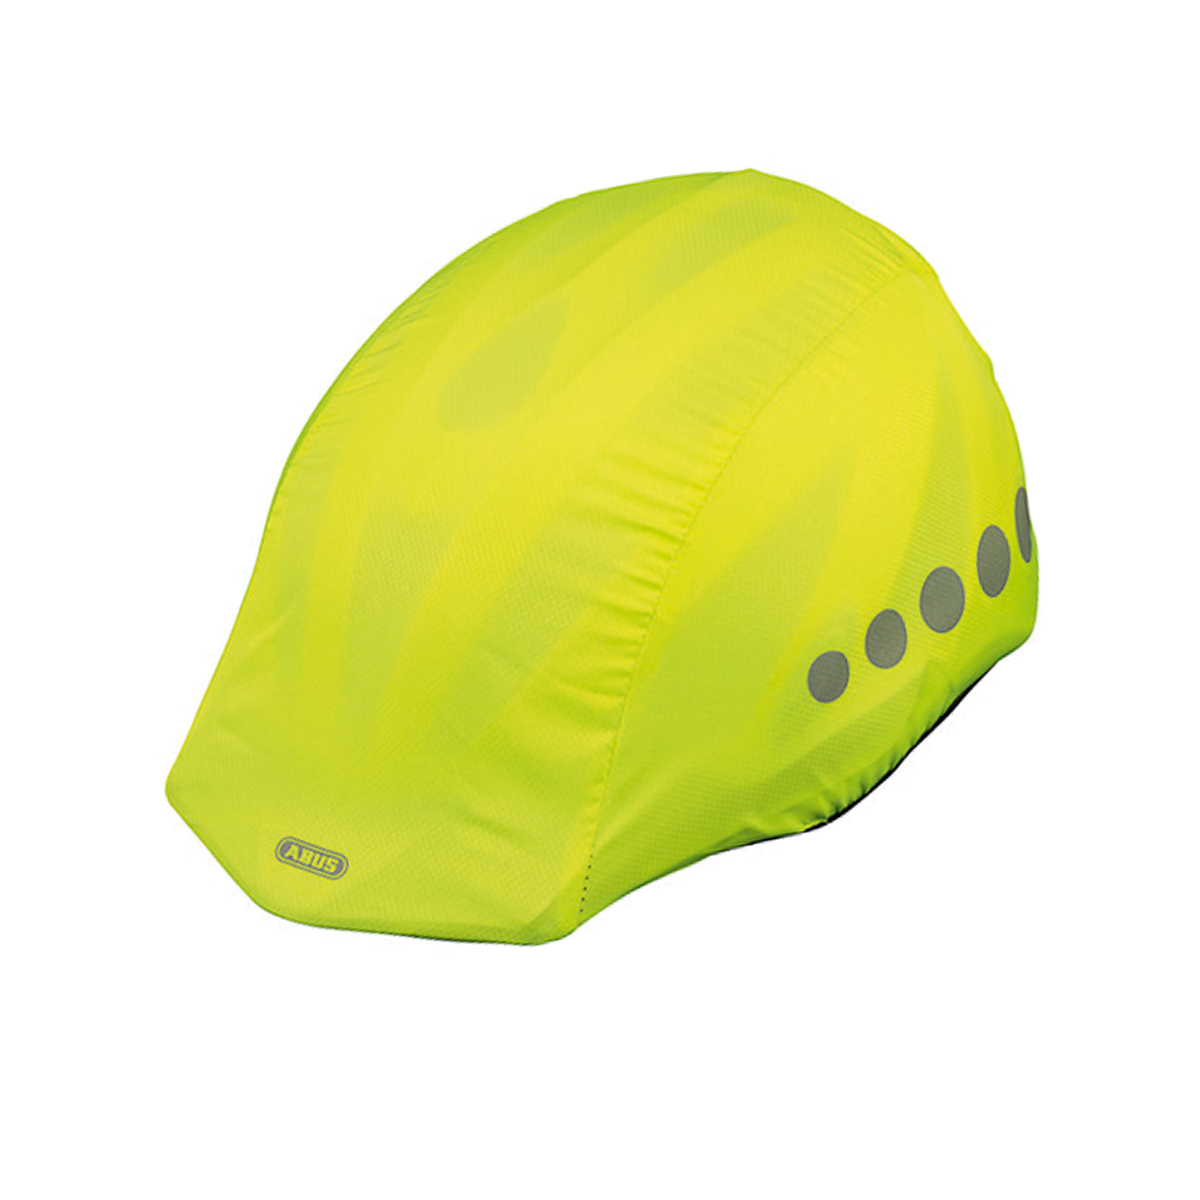 ABUS UNIVERSAL HELMET COVER: YELLOW ONE SIZE